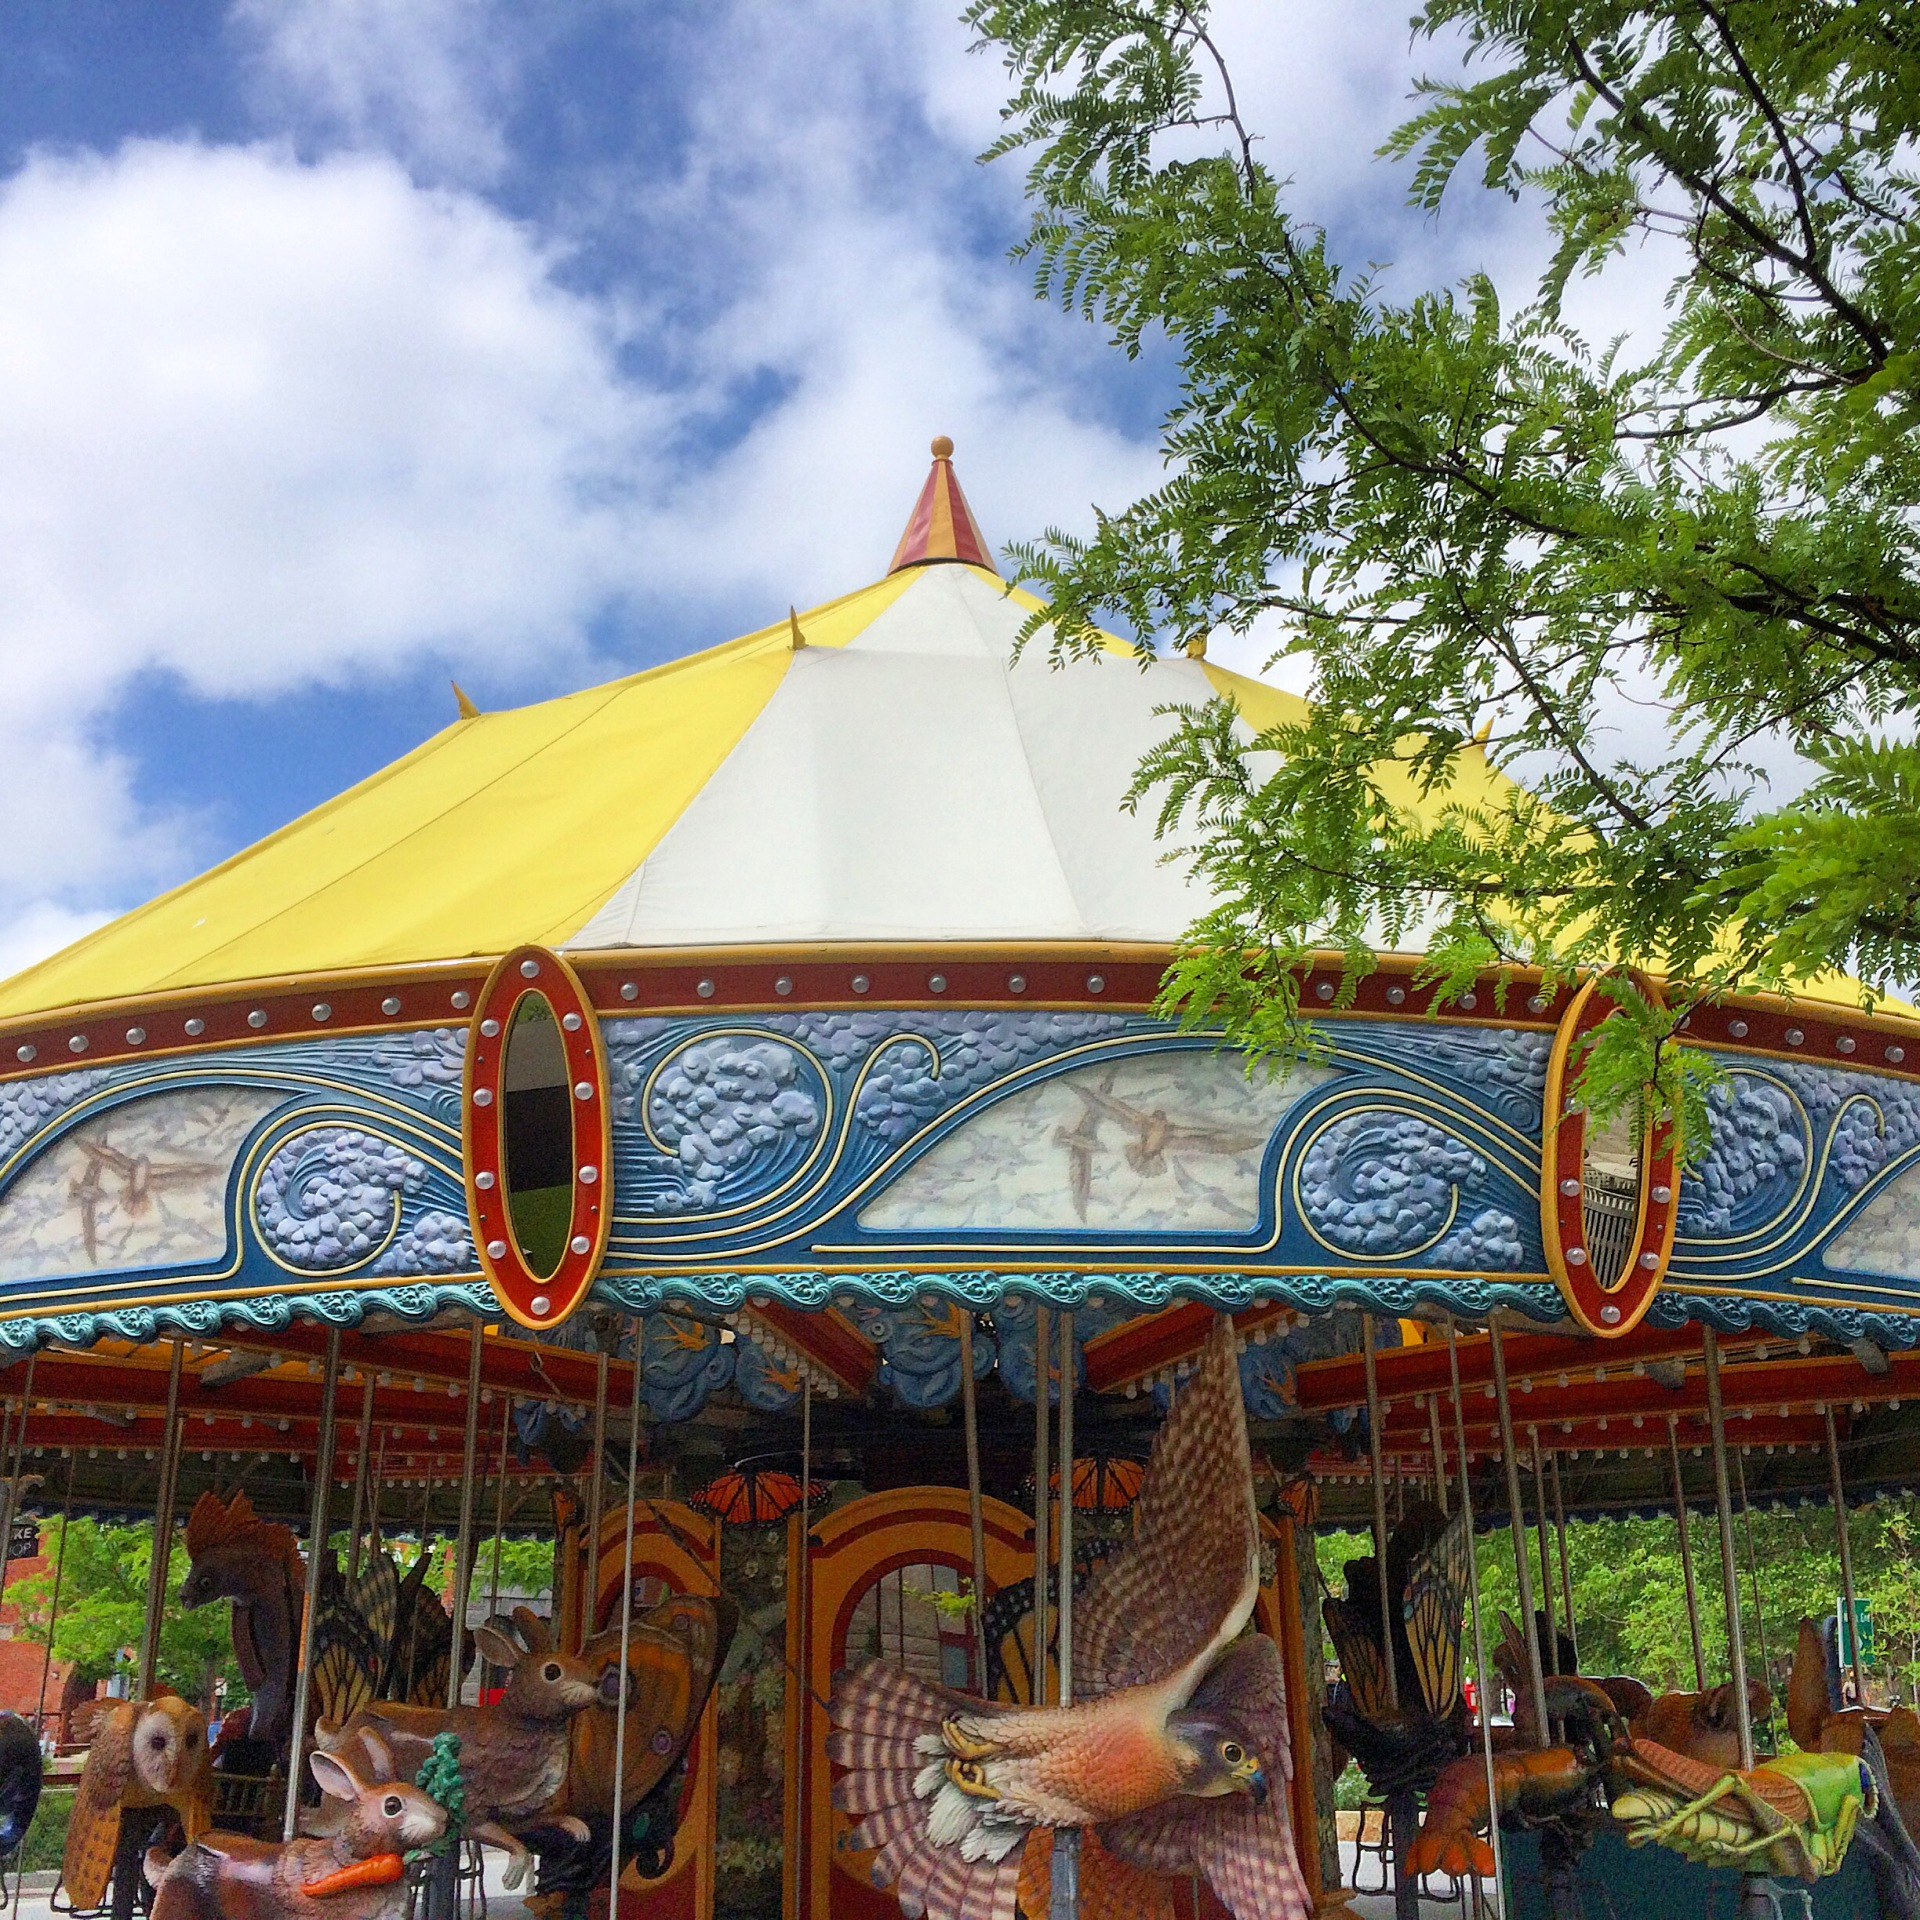 The Greenway Carousel